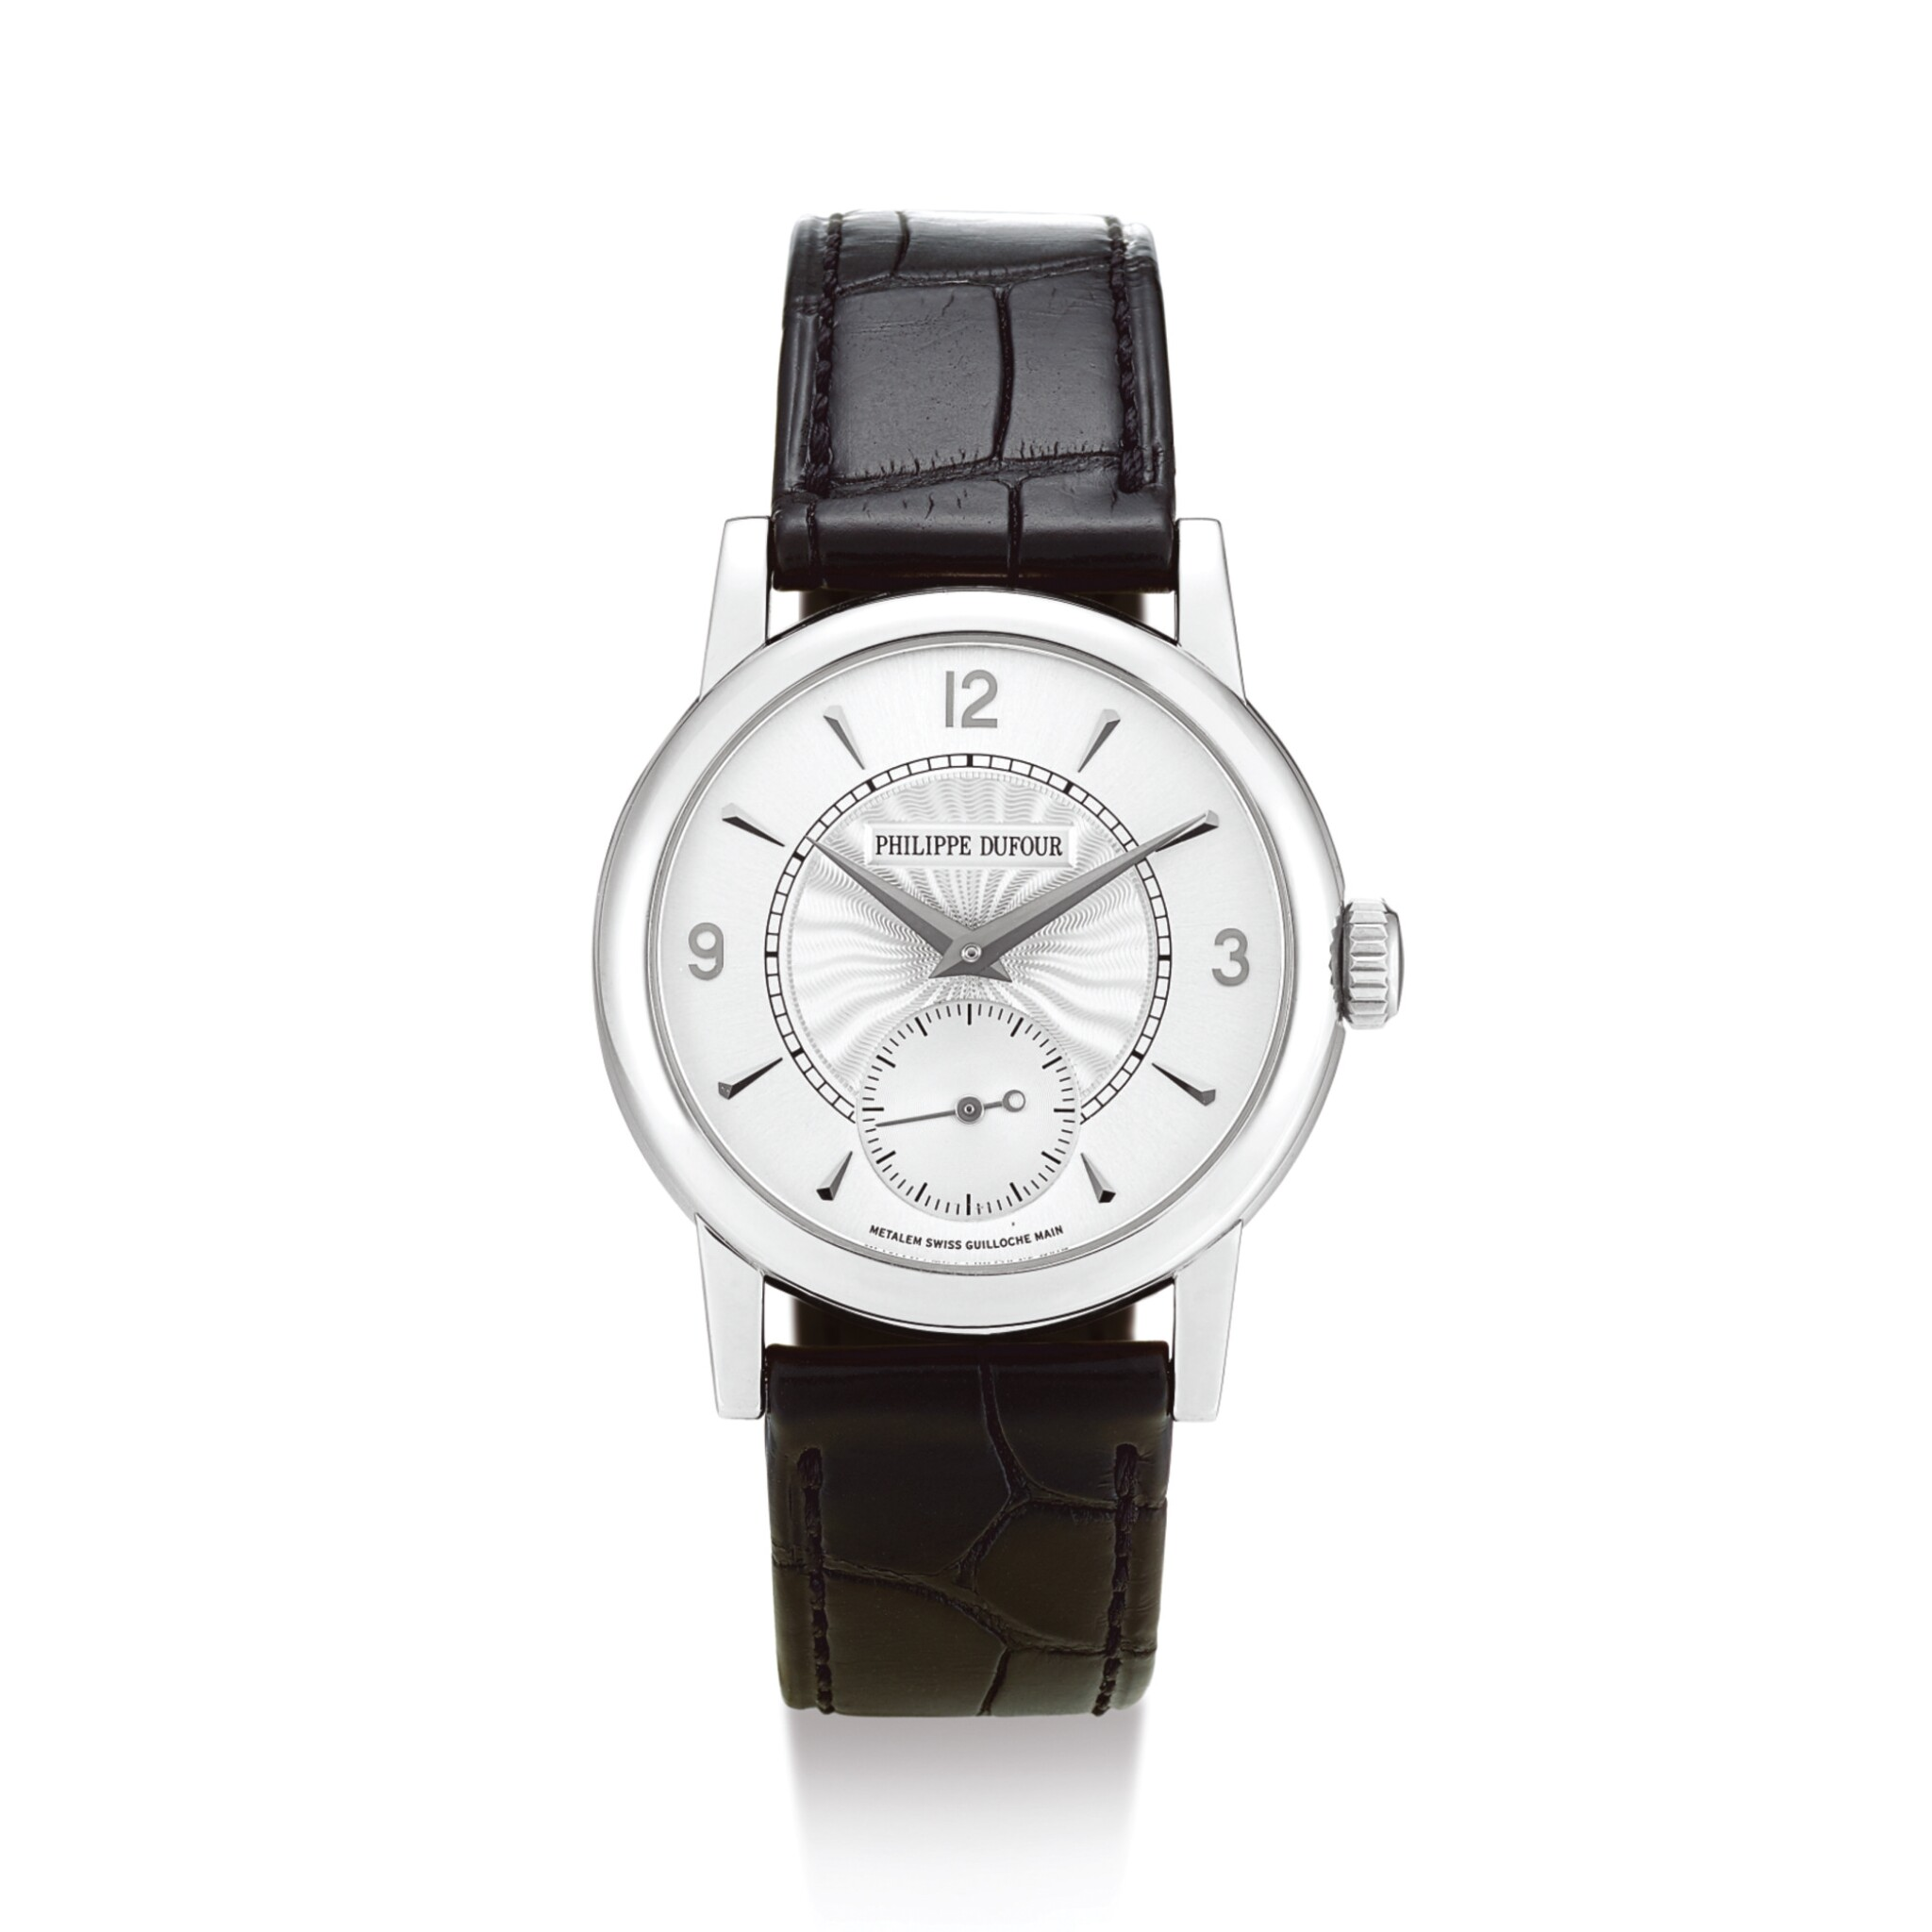 """View 1 of Lot 2293. PHILIPPE DUFOUR 